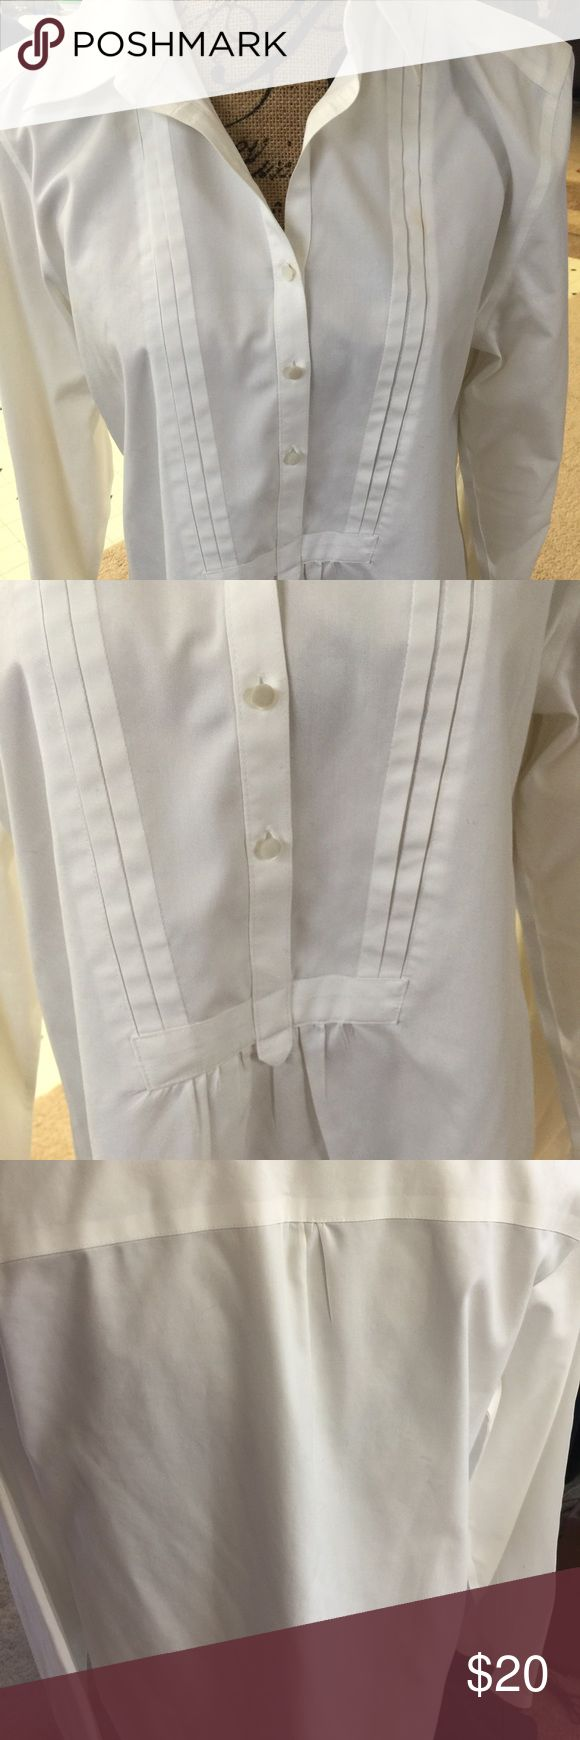 Coldwater Creek Blouse is a size L (14-16) This white crisp blouse is a Coldwater Creek size L (14-16) in almost new condition. Long sleeves no iron blouse  gathered at front of waist . Coldwater Creek Tops Blouses